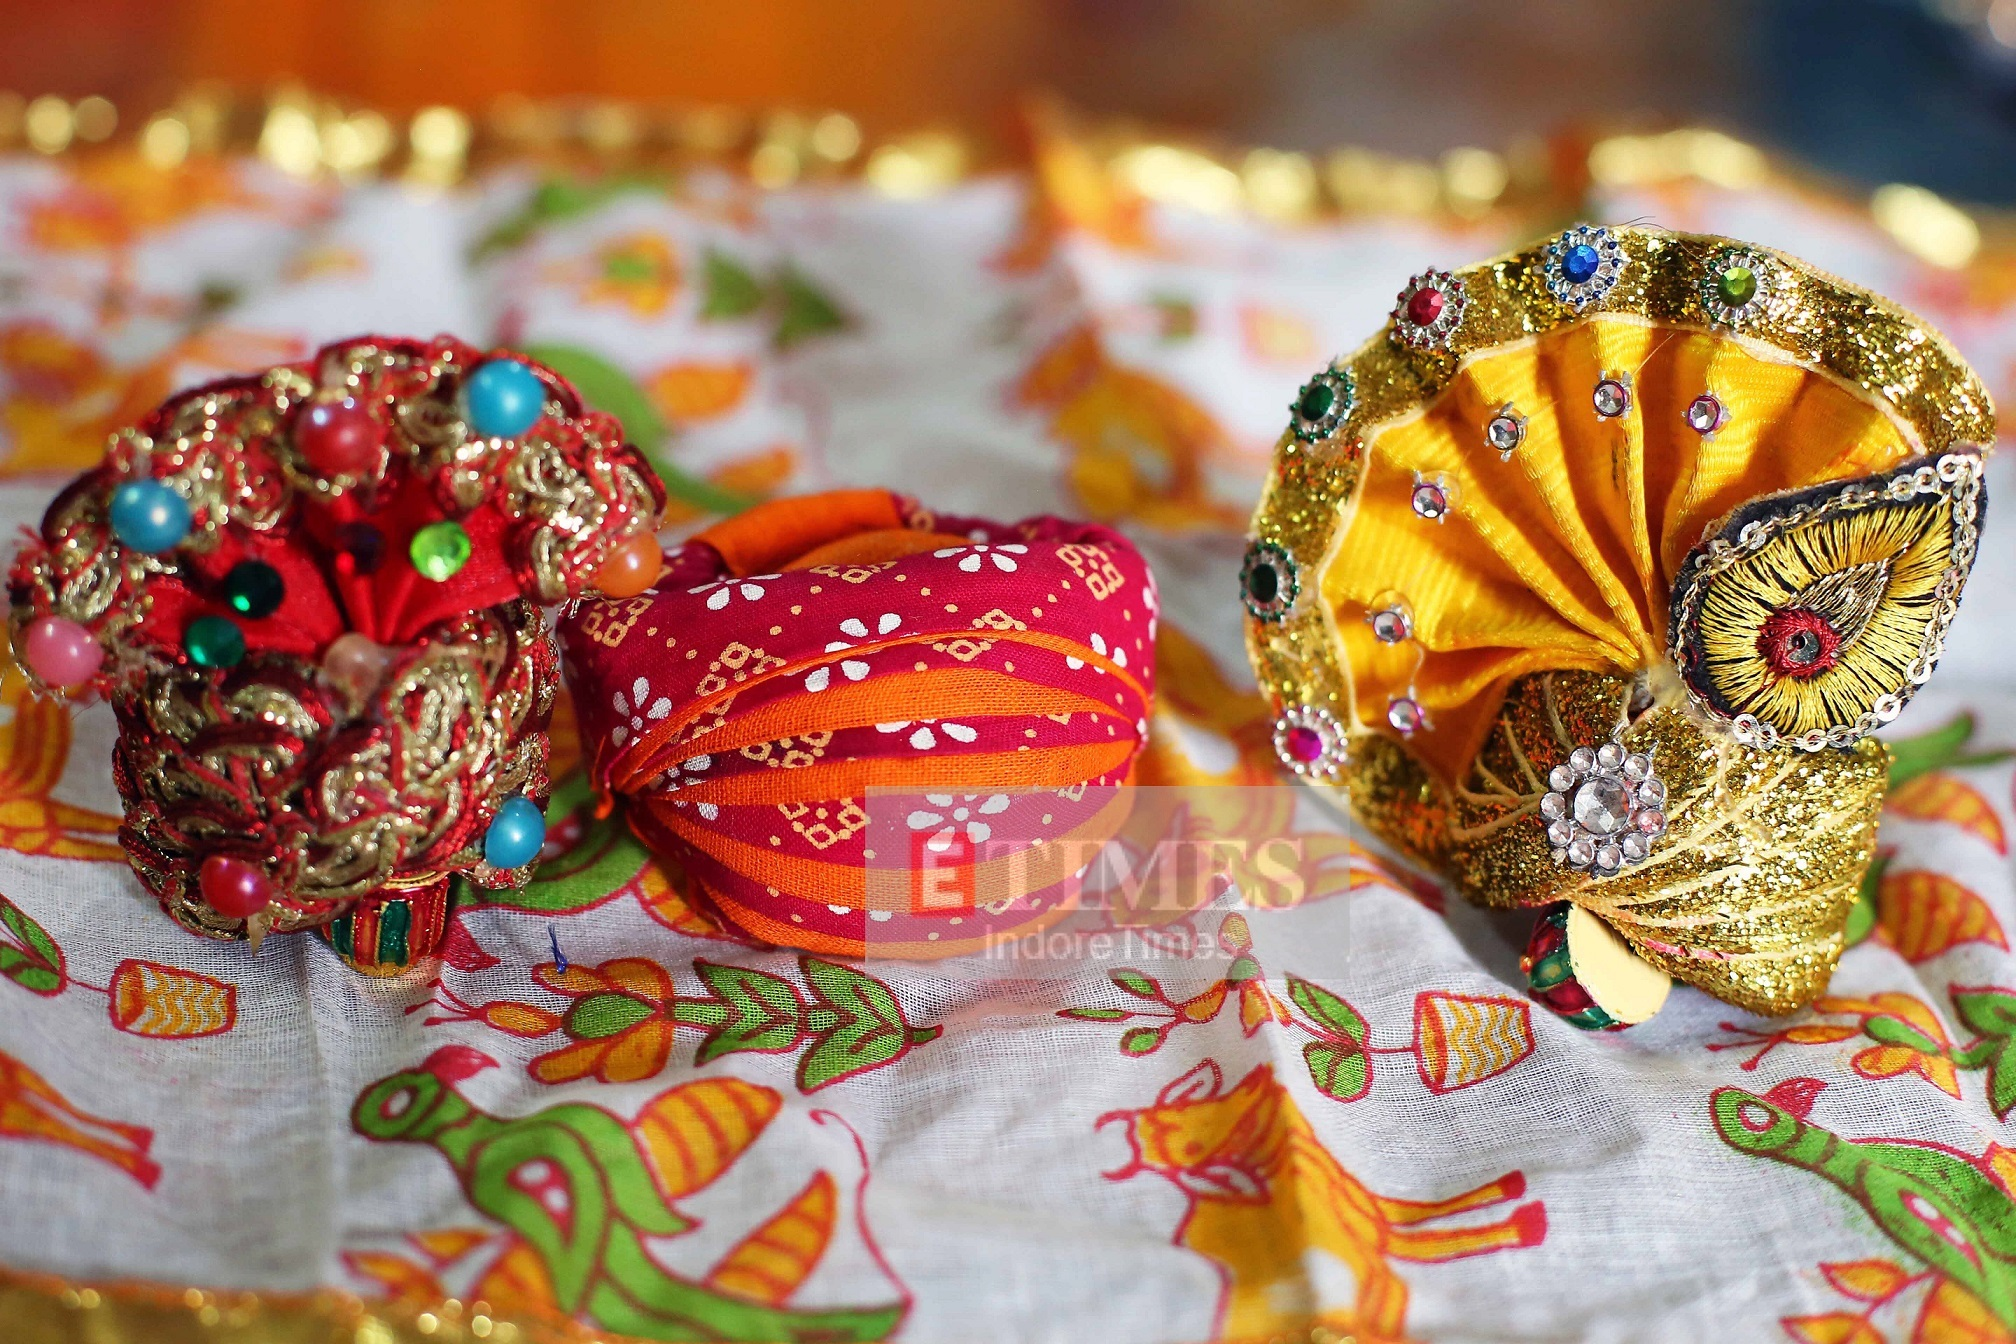 Repurposing old clothes and sarees to create turbans